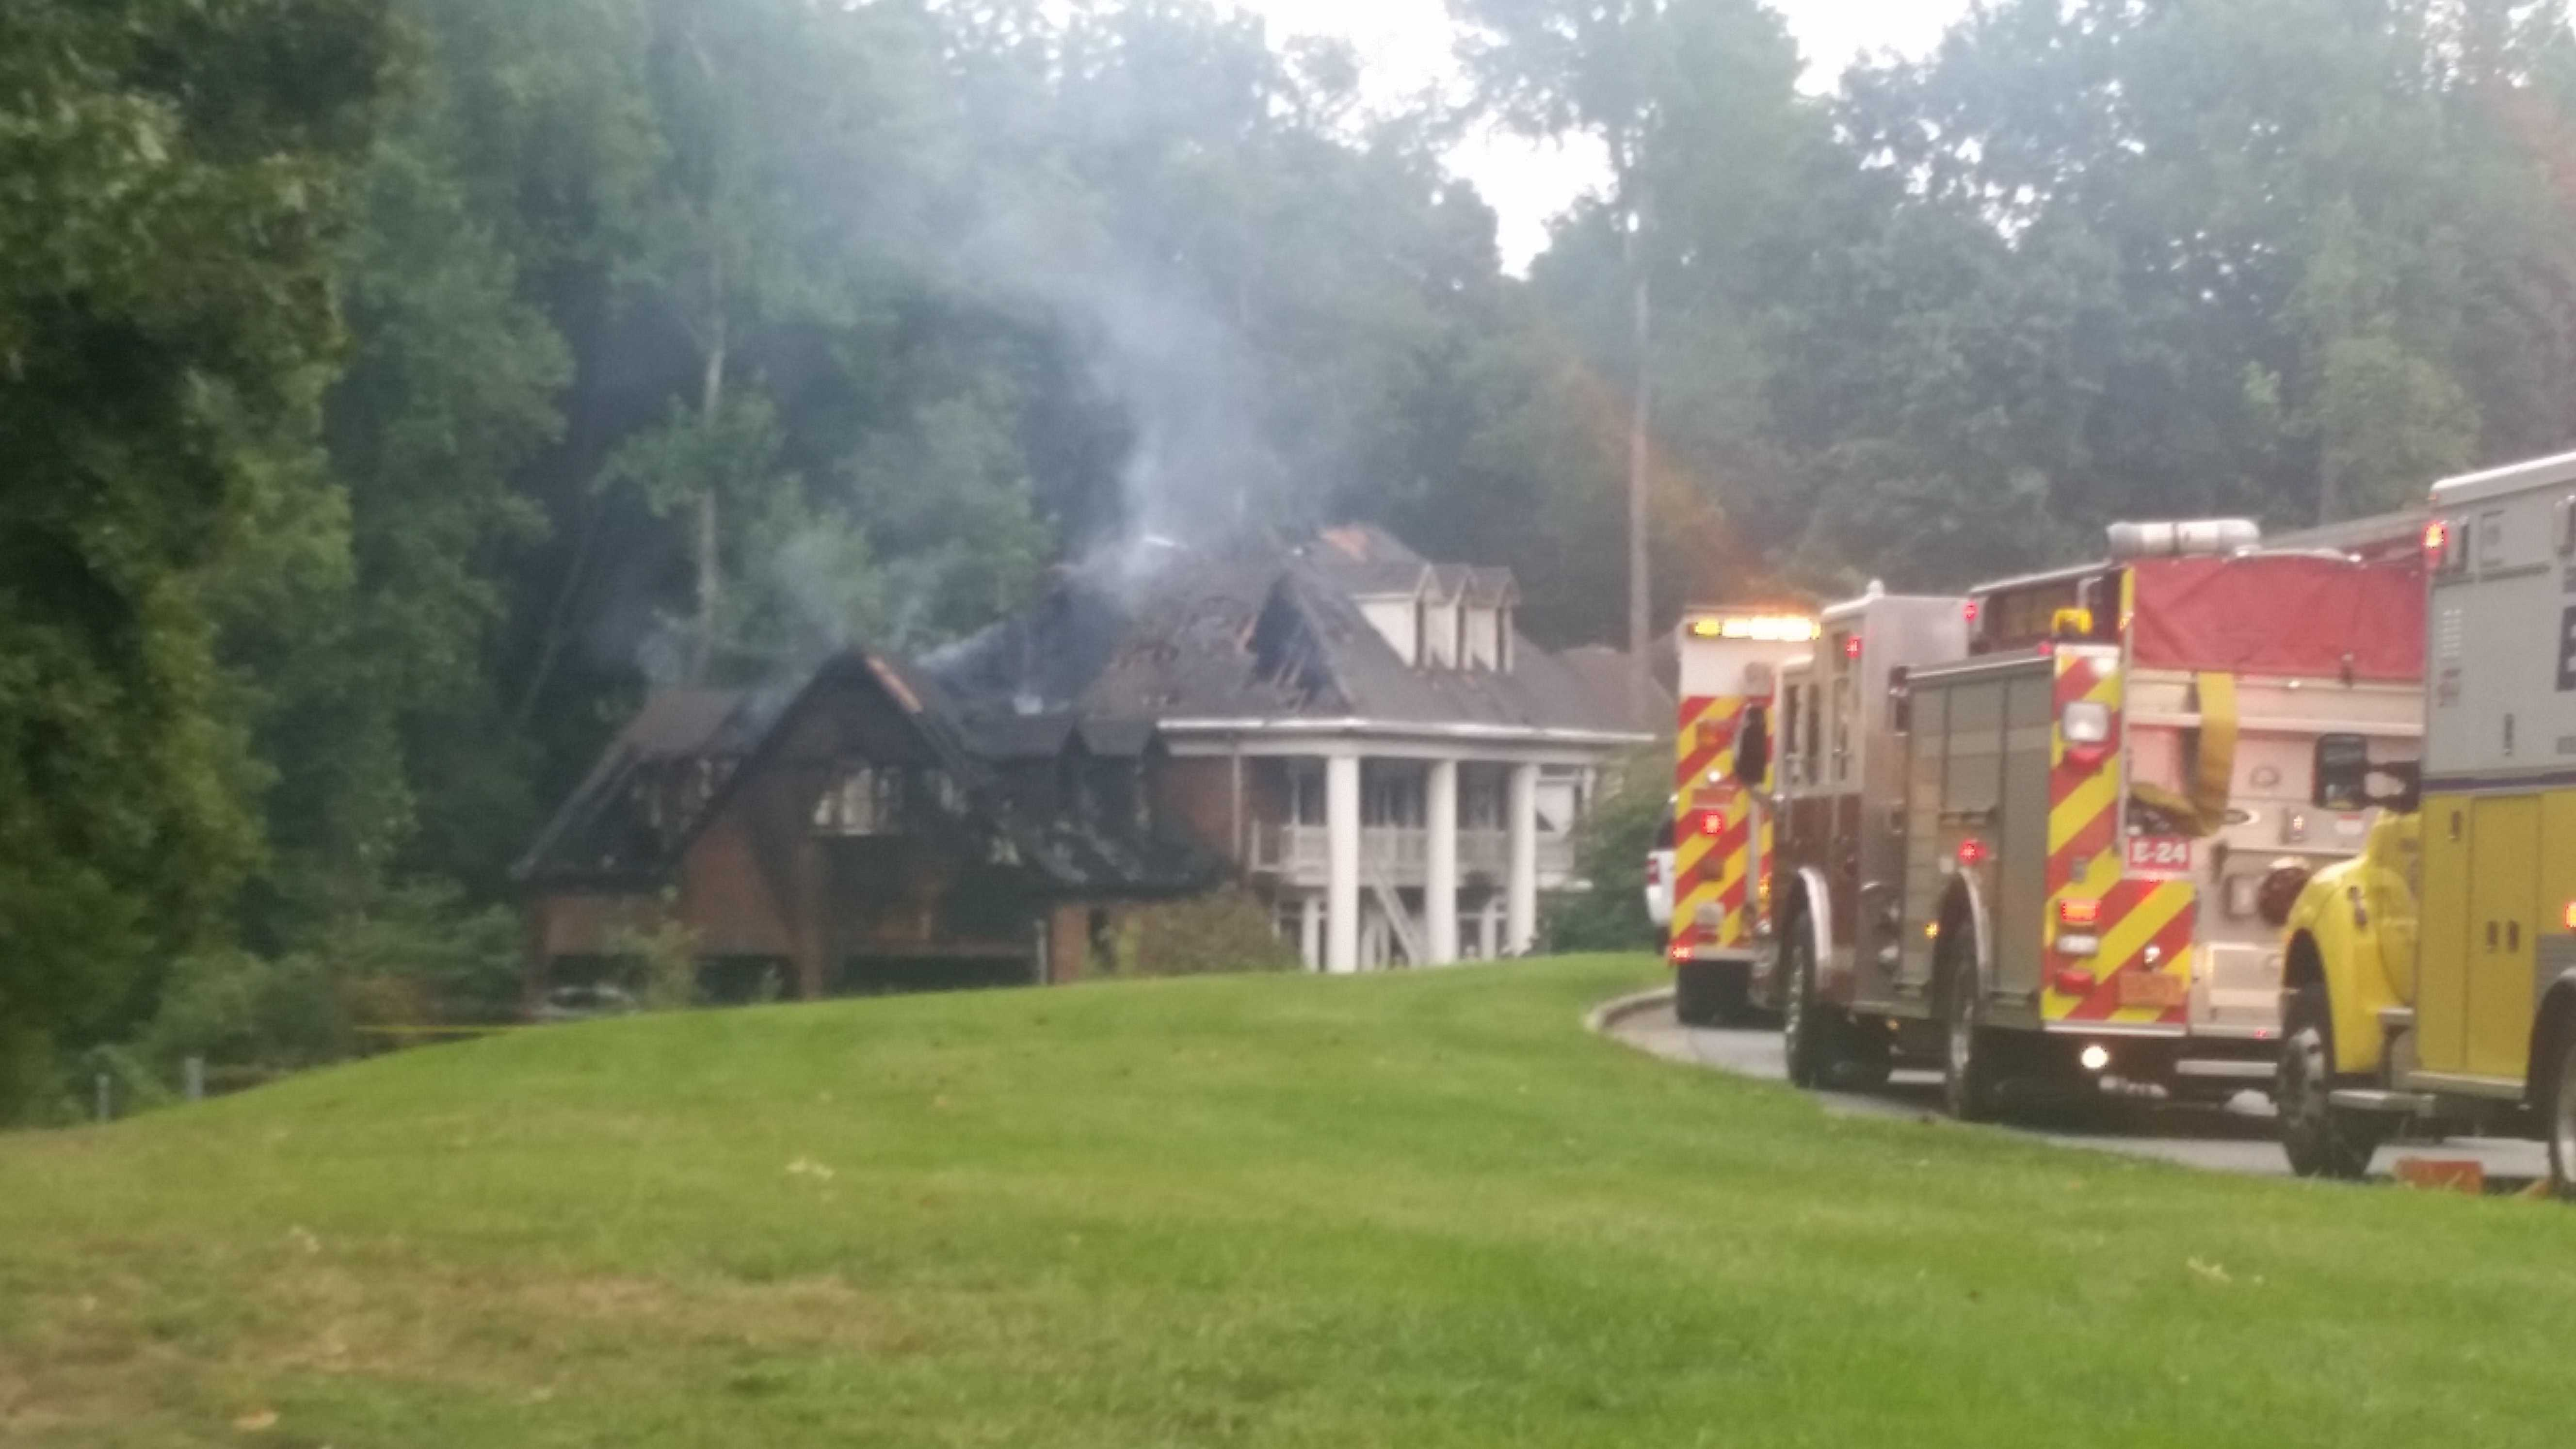 The fire happened Sunday afternoon in Greensboro.